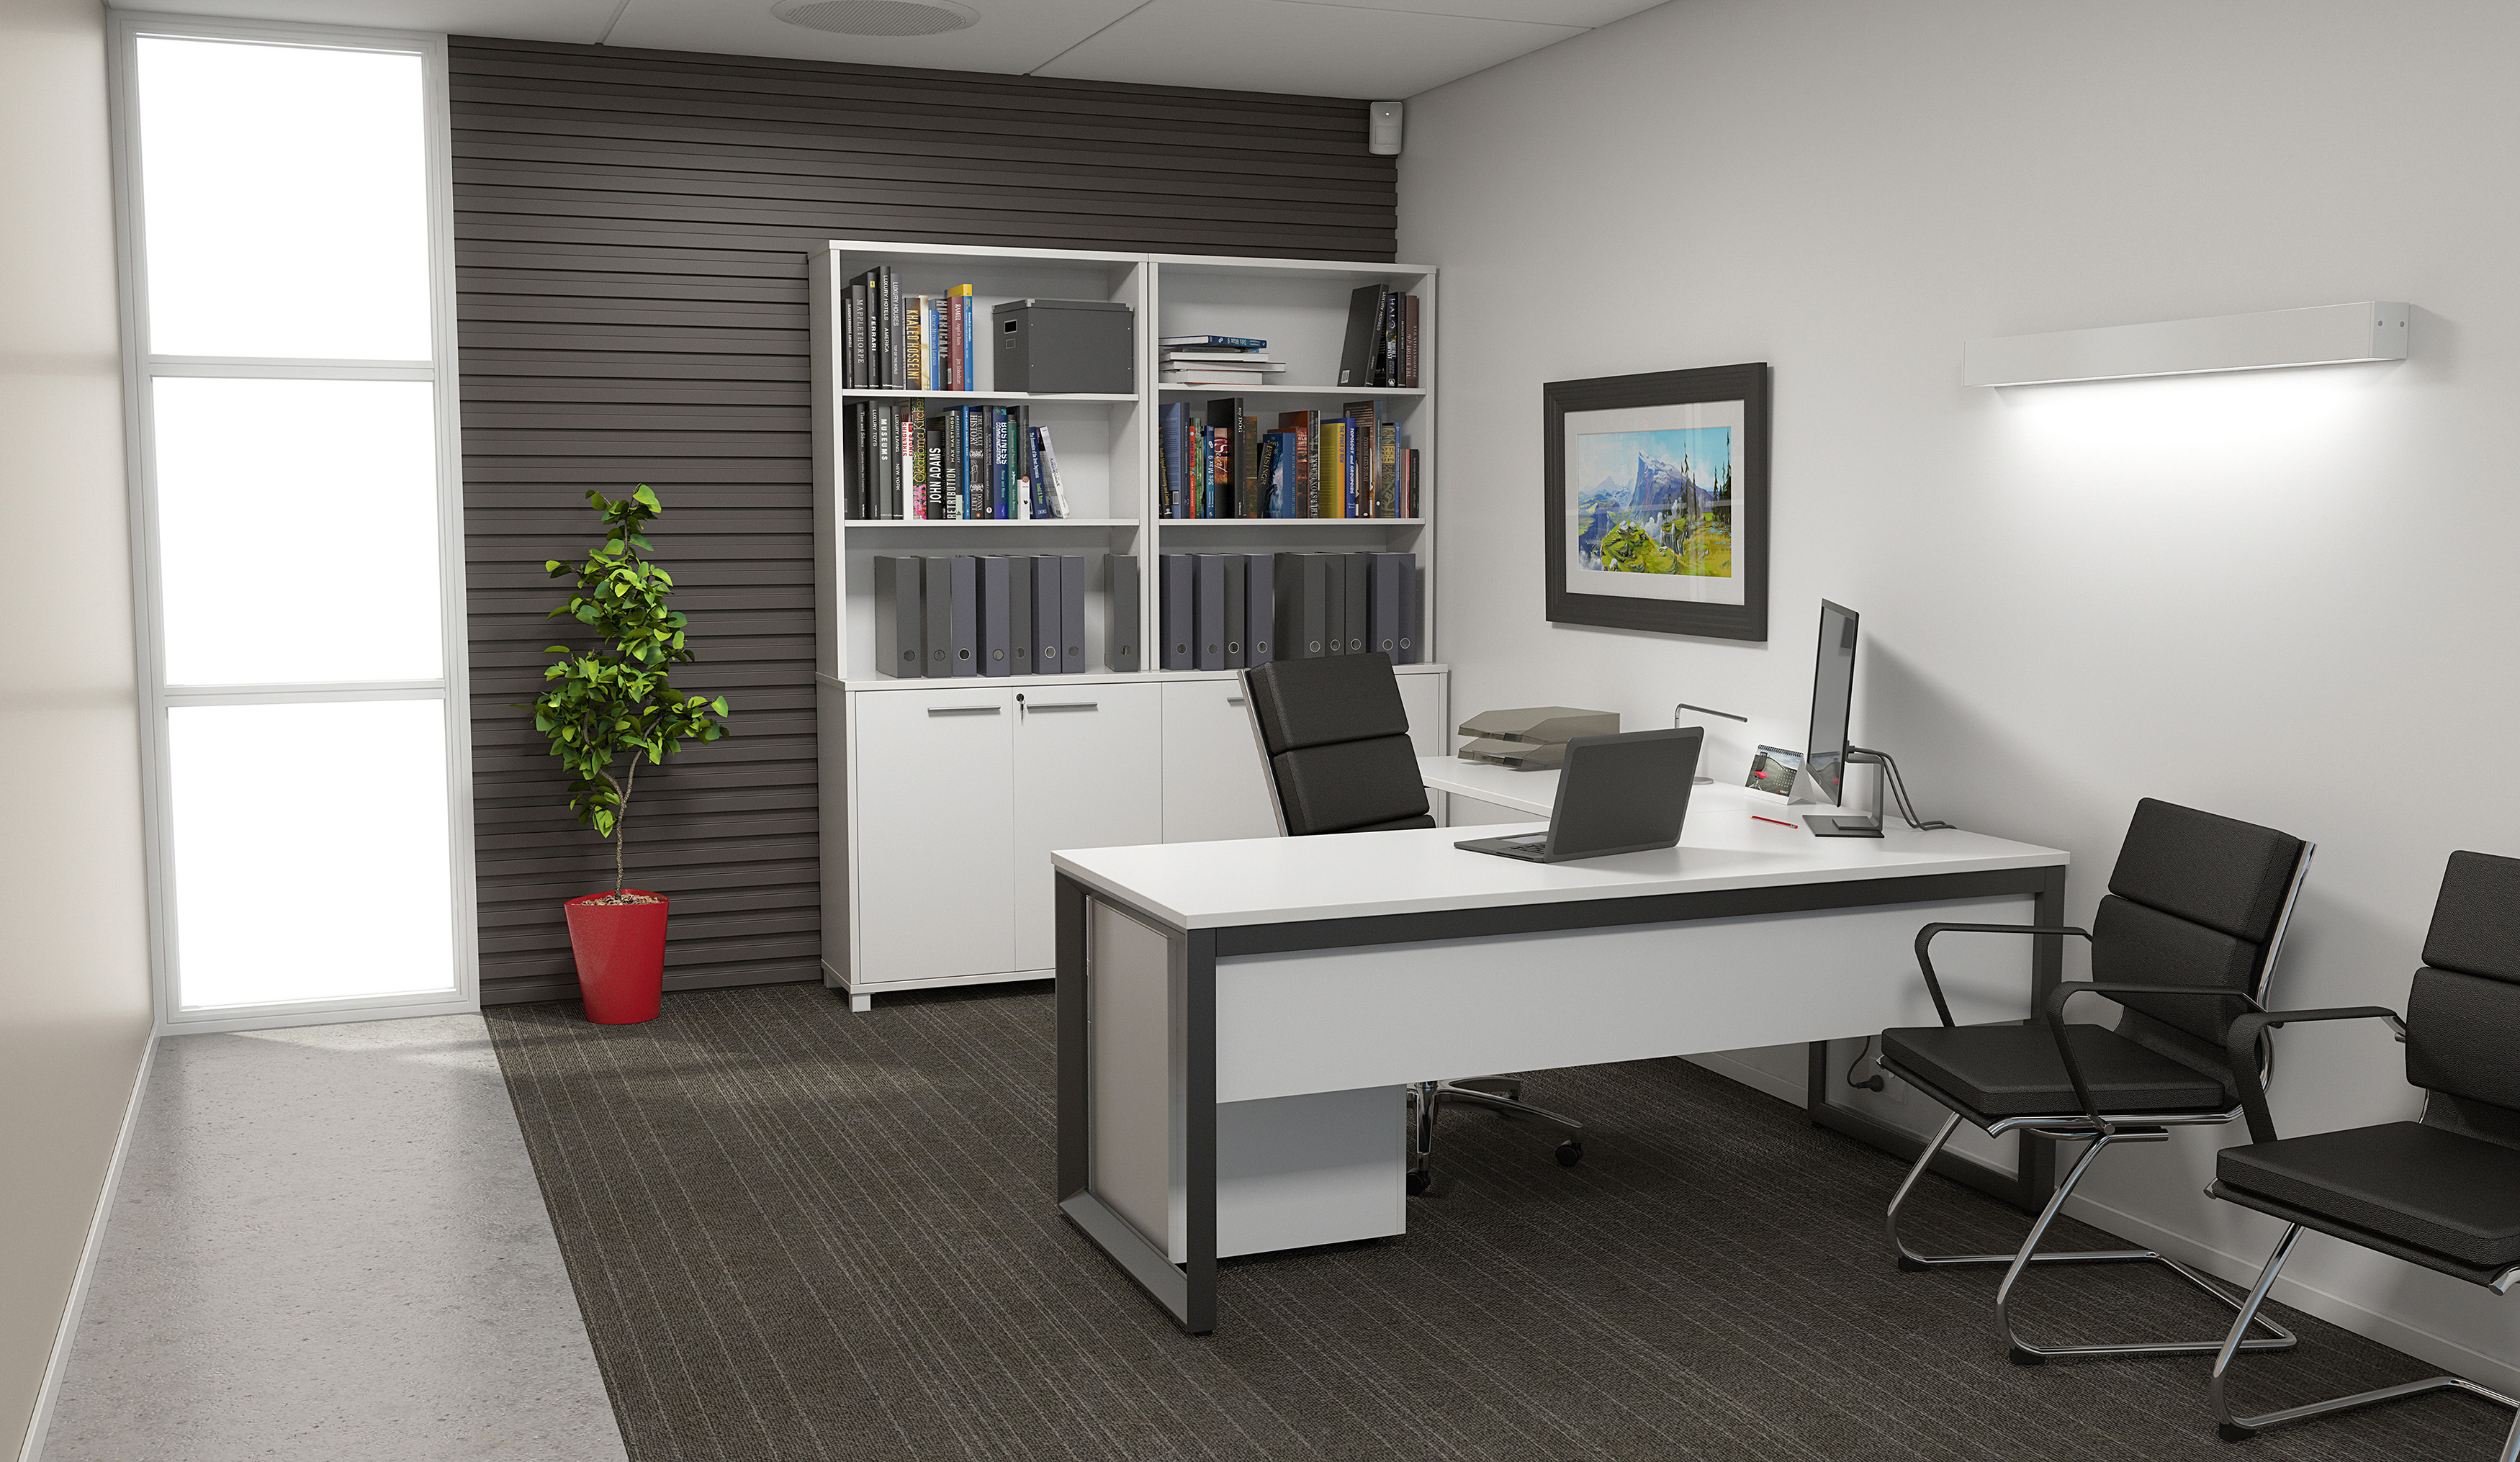 Private Office Space with an L-Desk, a Bookshelve Unit and Visitor Seating